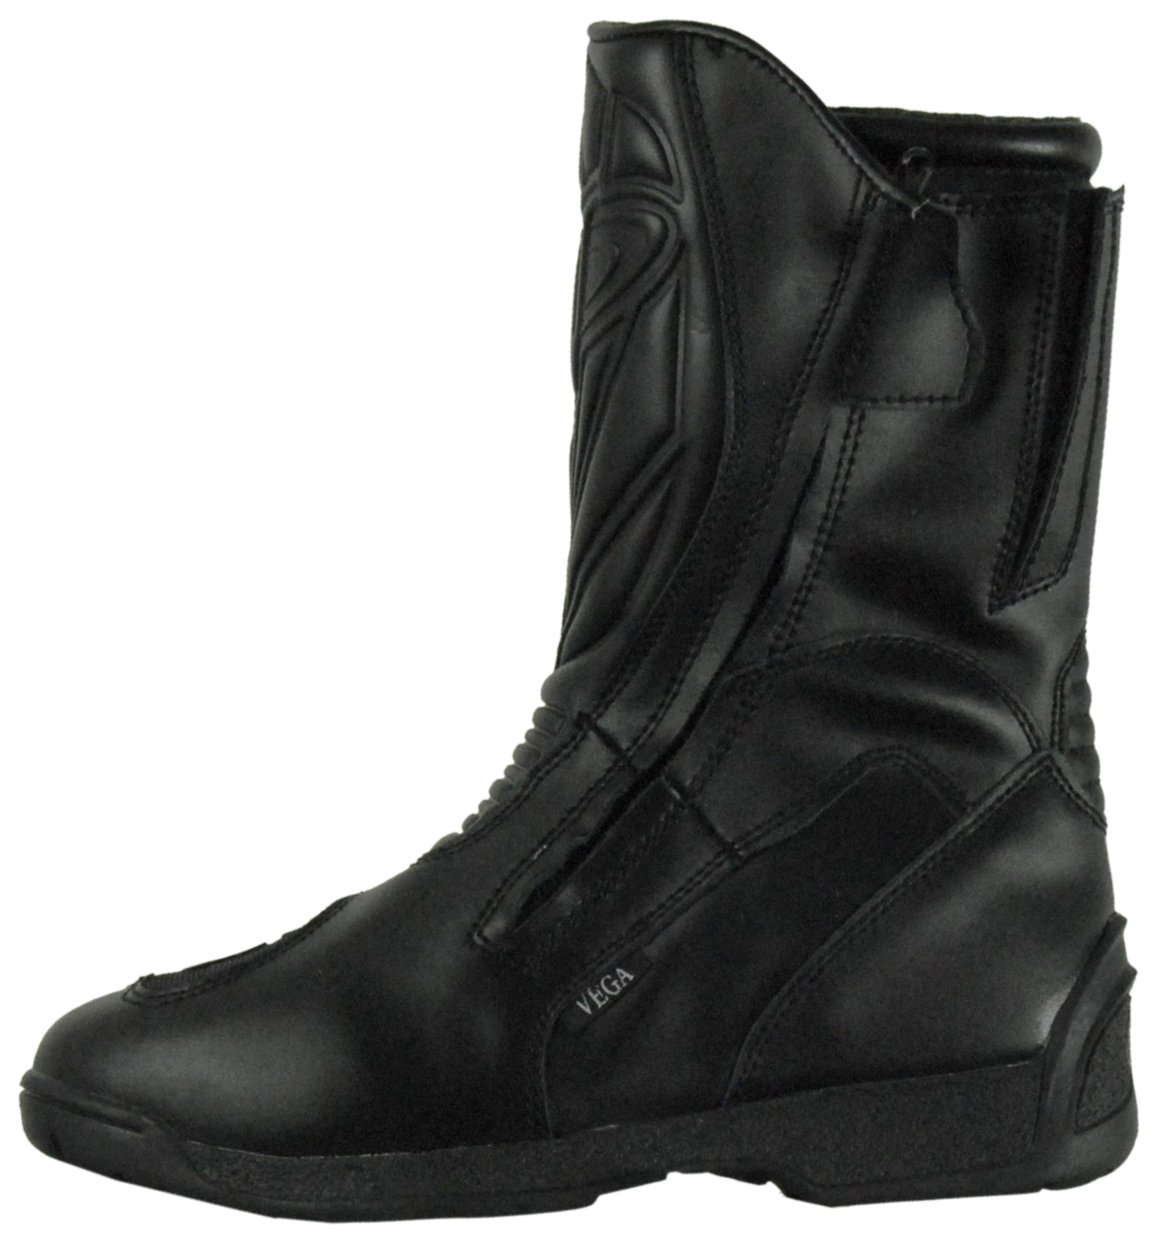 Vega Technical Gear Vega Touring Men's Motorcycle Boots (Black, Size 10)